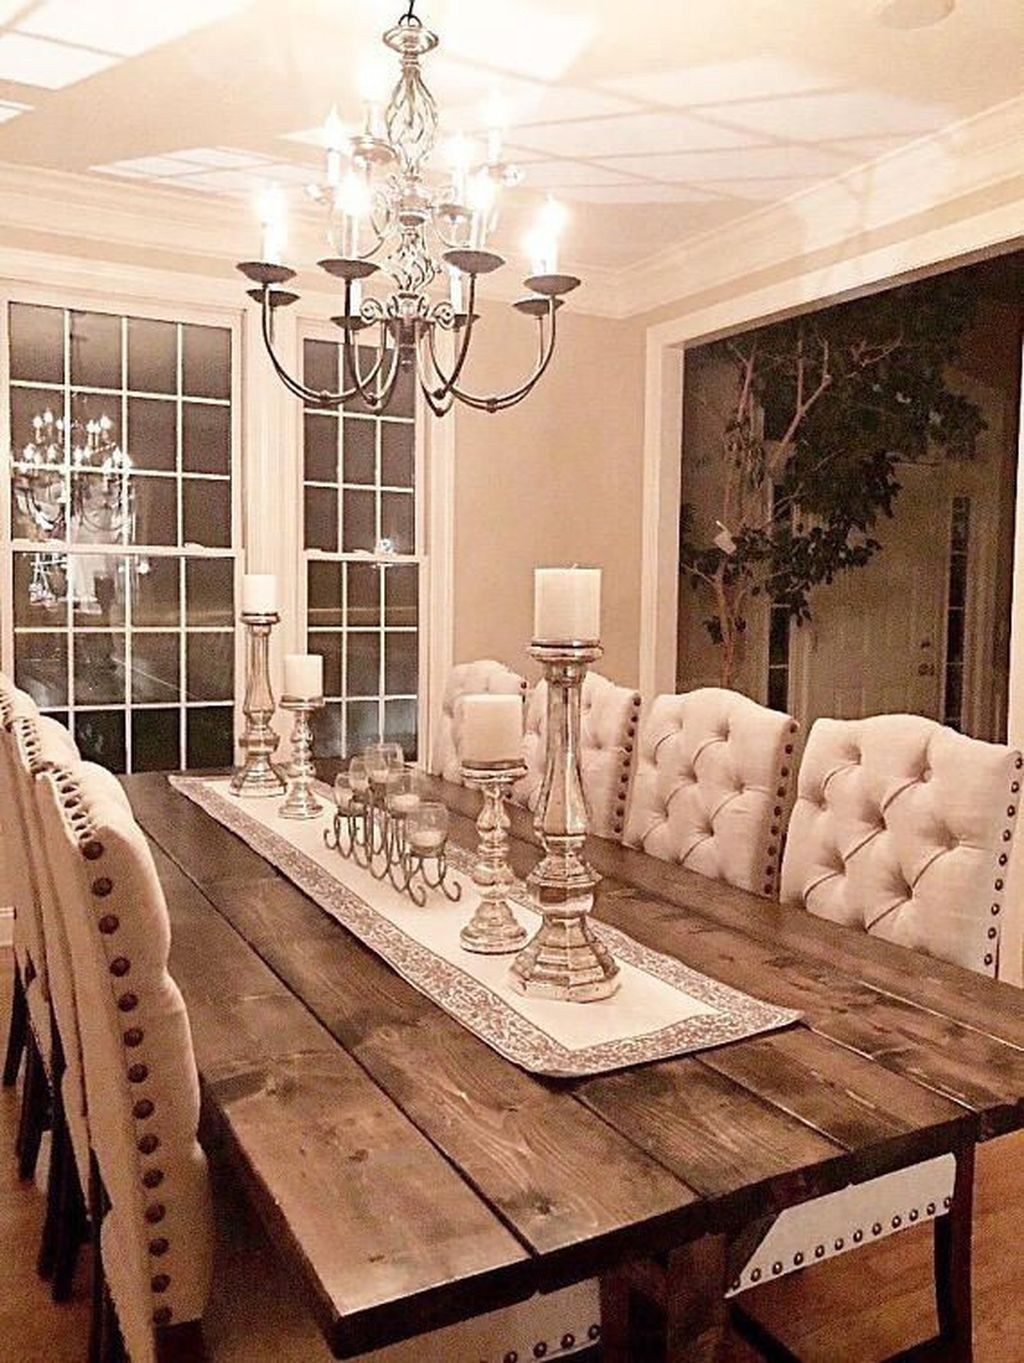 Rustic Farmhouse Living Room Decor Ideas 44 Farmhouse Dining